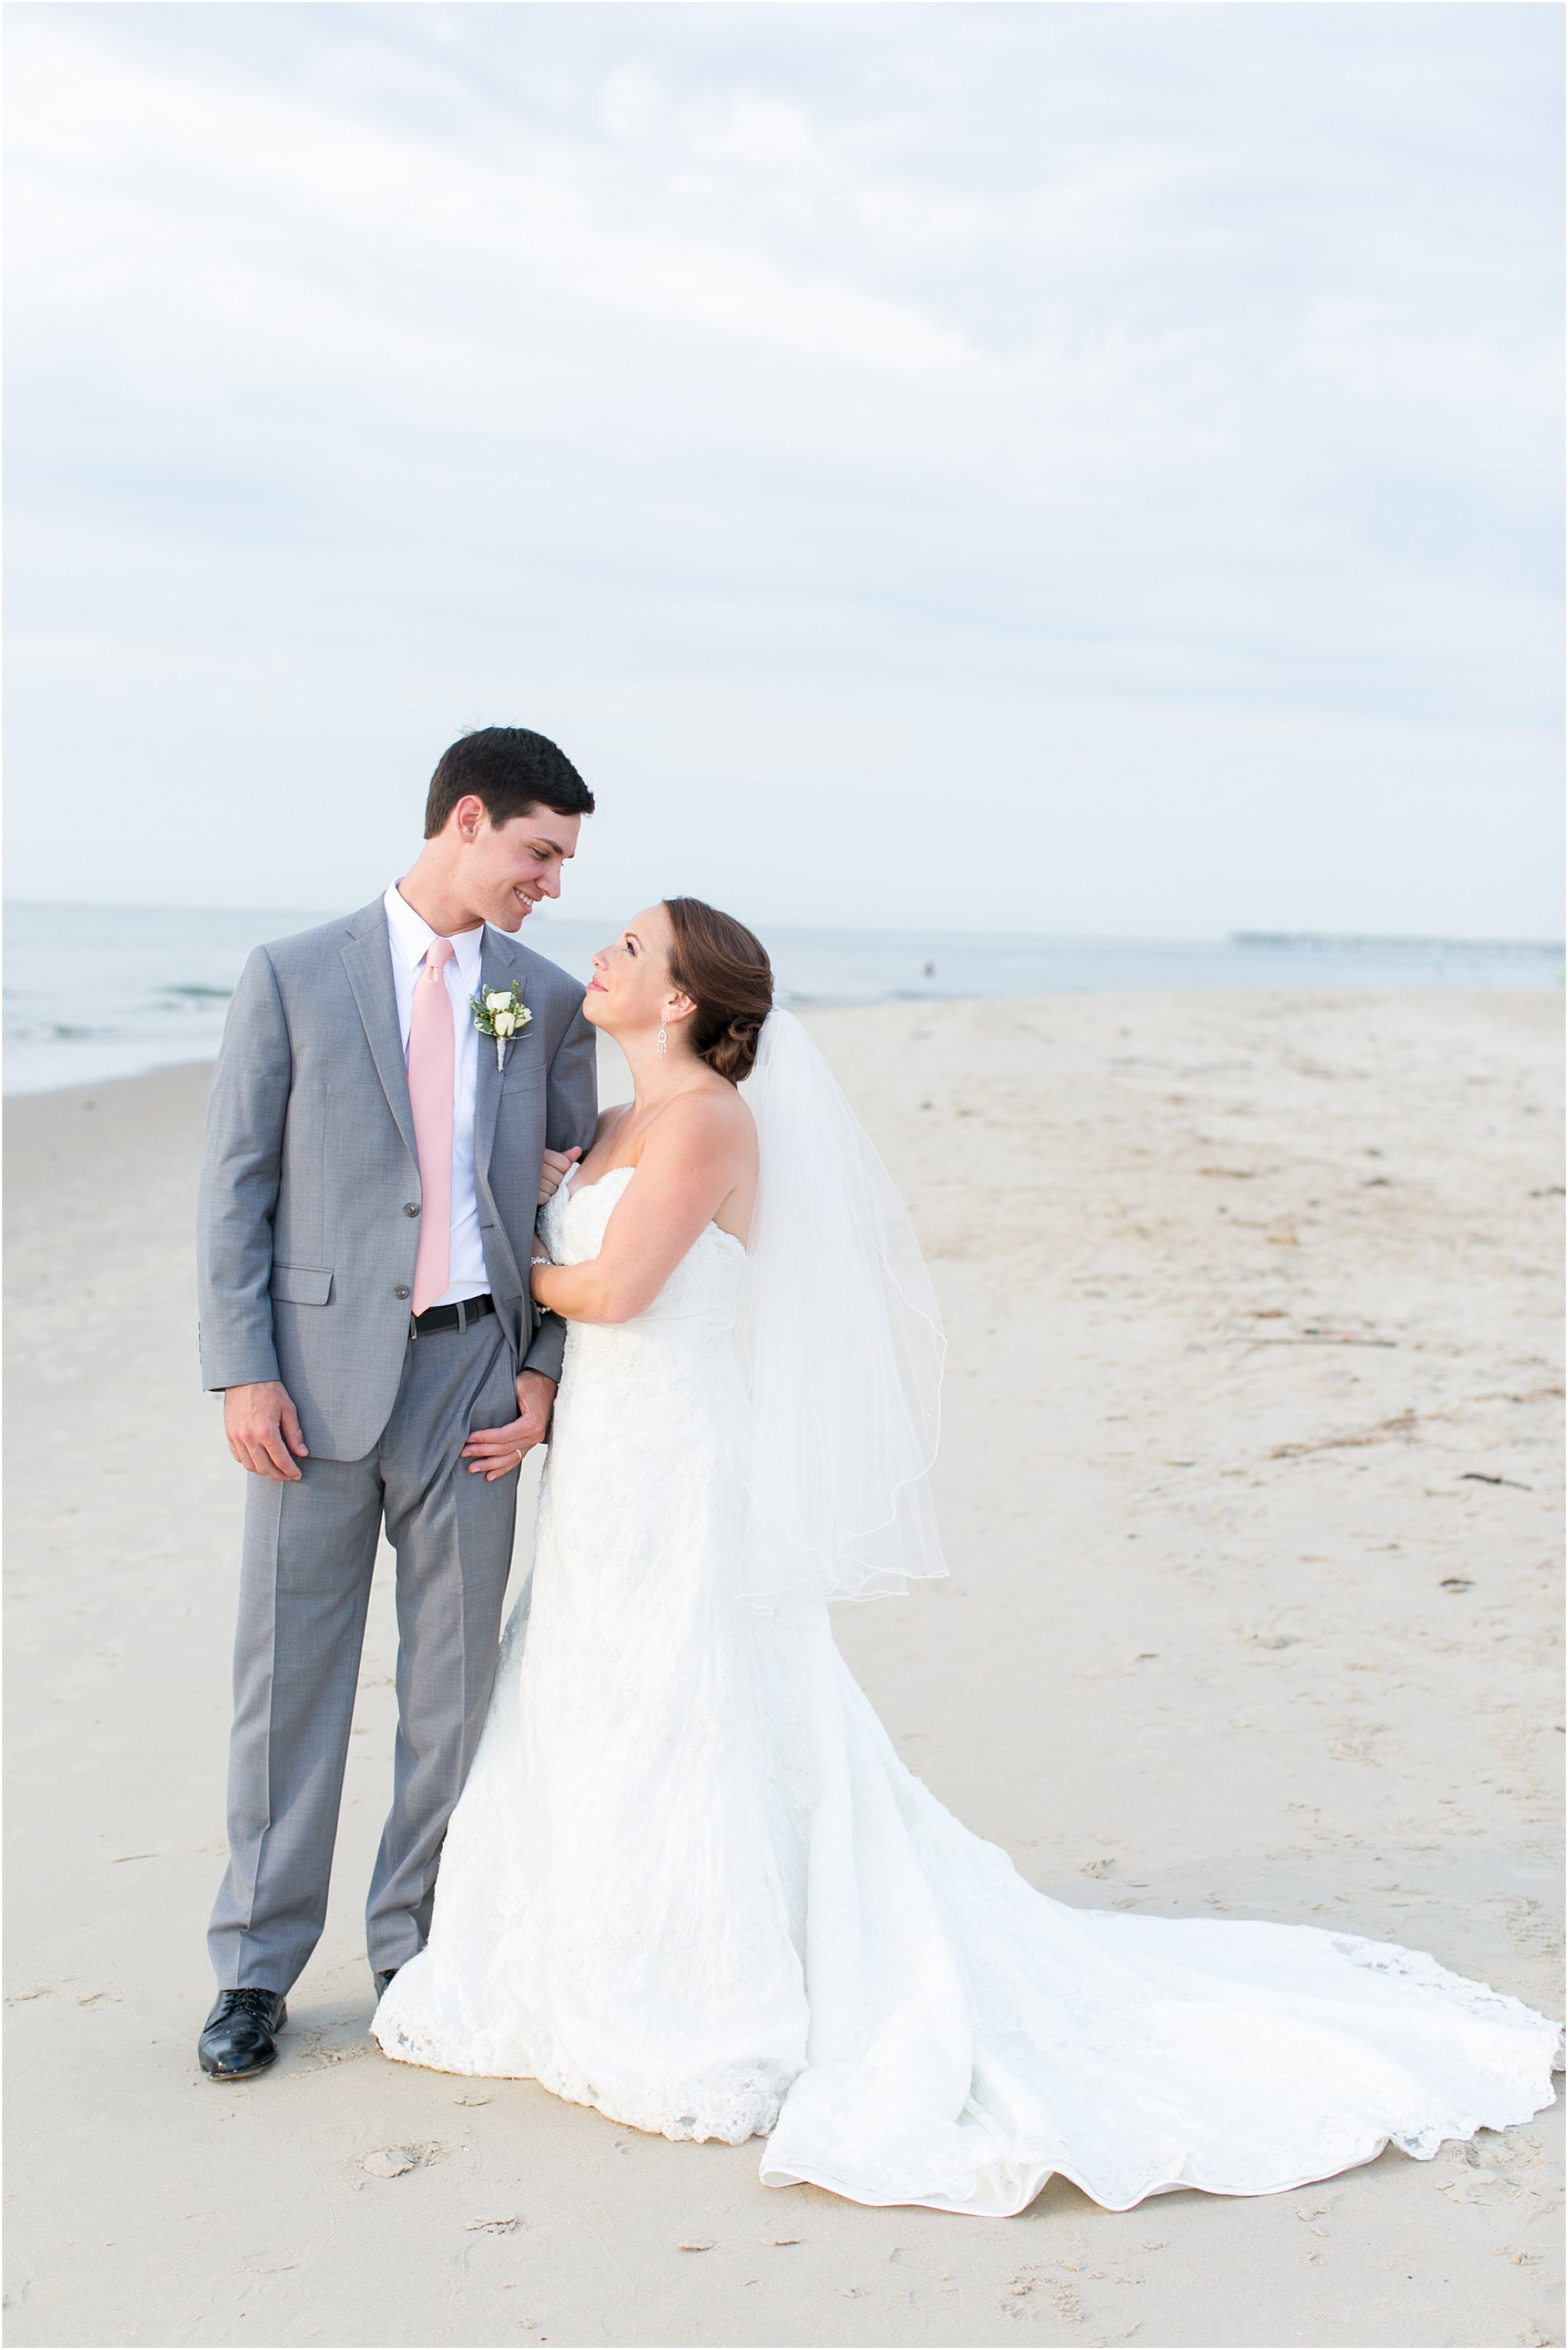 jessica_ryan_photography_wedding_photography_virginiabeach_virginia_candid_authentic_wedding_portraits_marina_shores_yacht_club_chesapeake_bay_1888